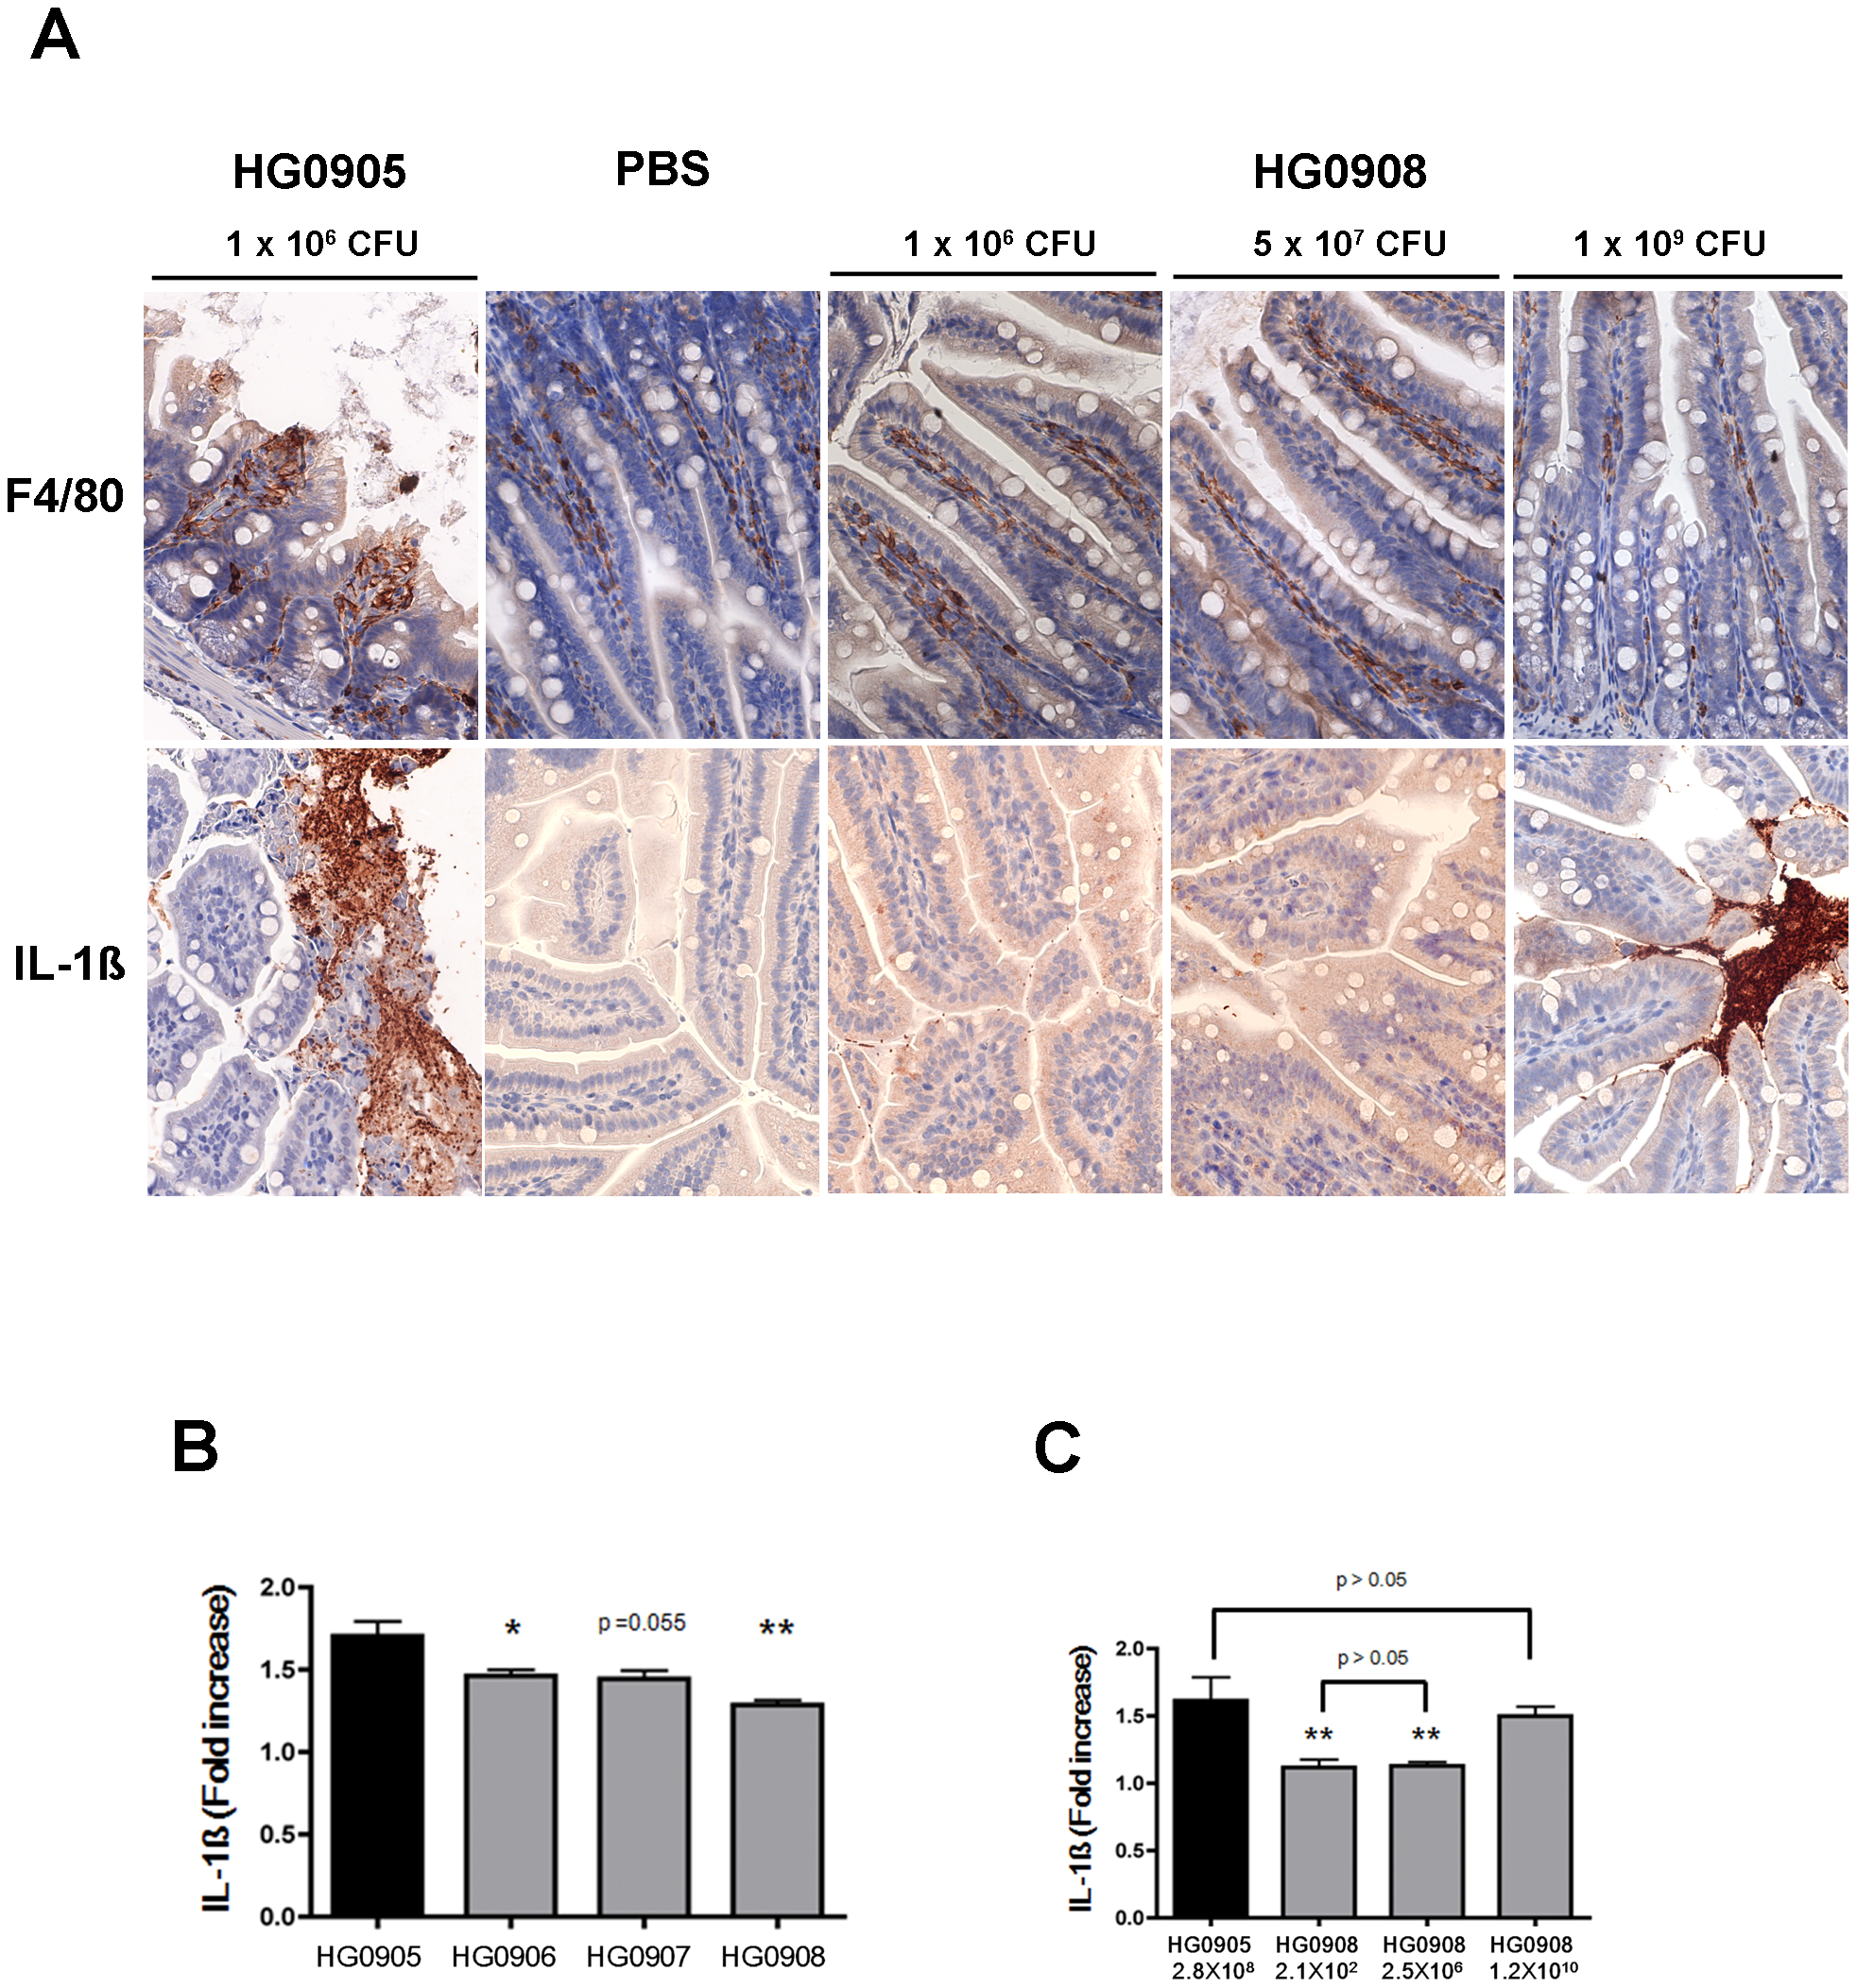 Comparison of HG0905 effect on villi, macrophage and IL-1ß expression to HG0908.